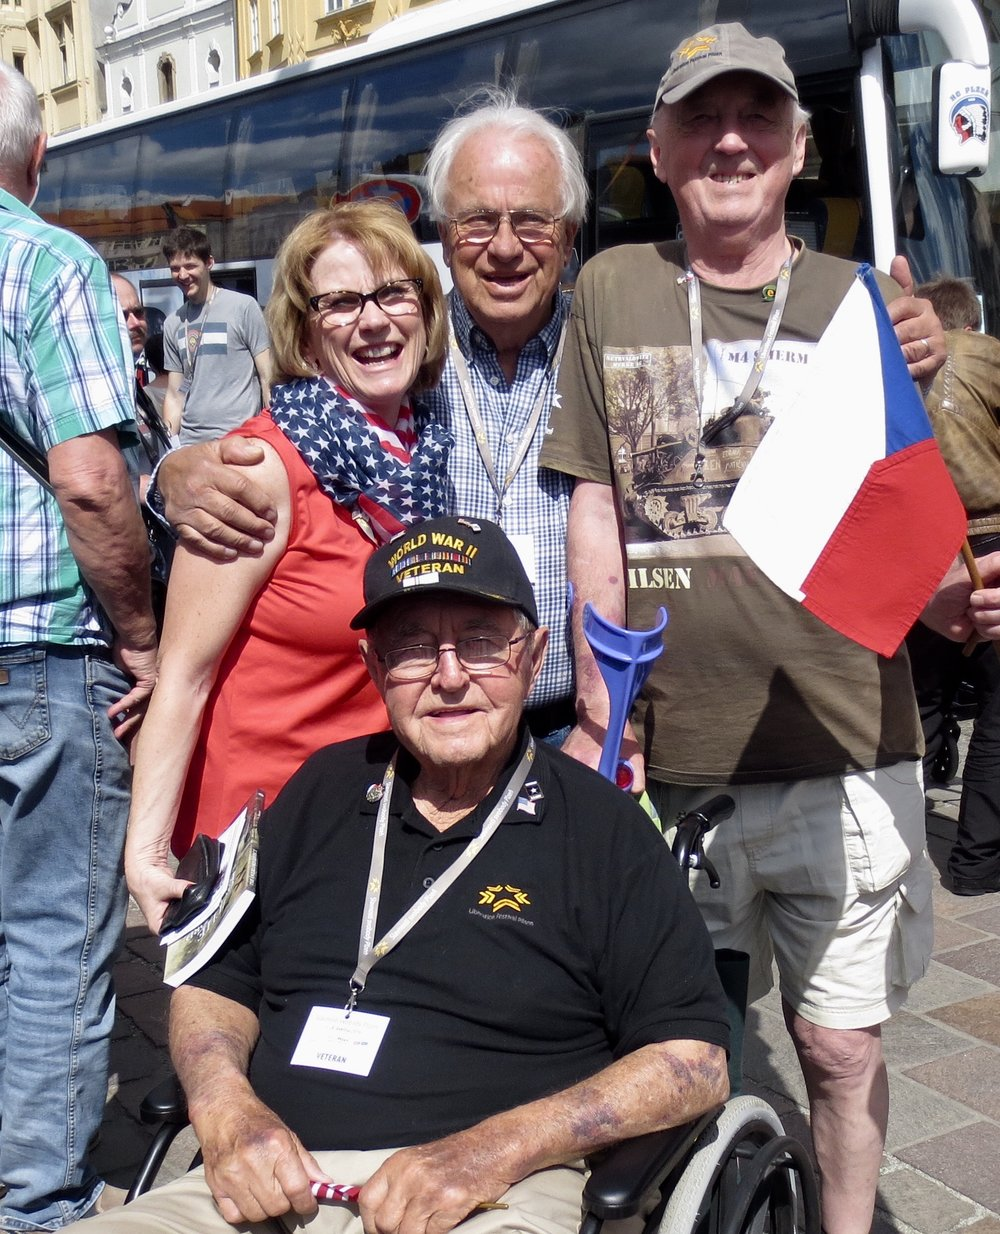 Reuben with Lee and Kathy Anderson and Stanley Bartl during the Pilsen Liberation Festival